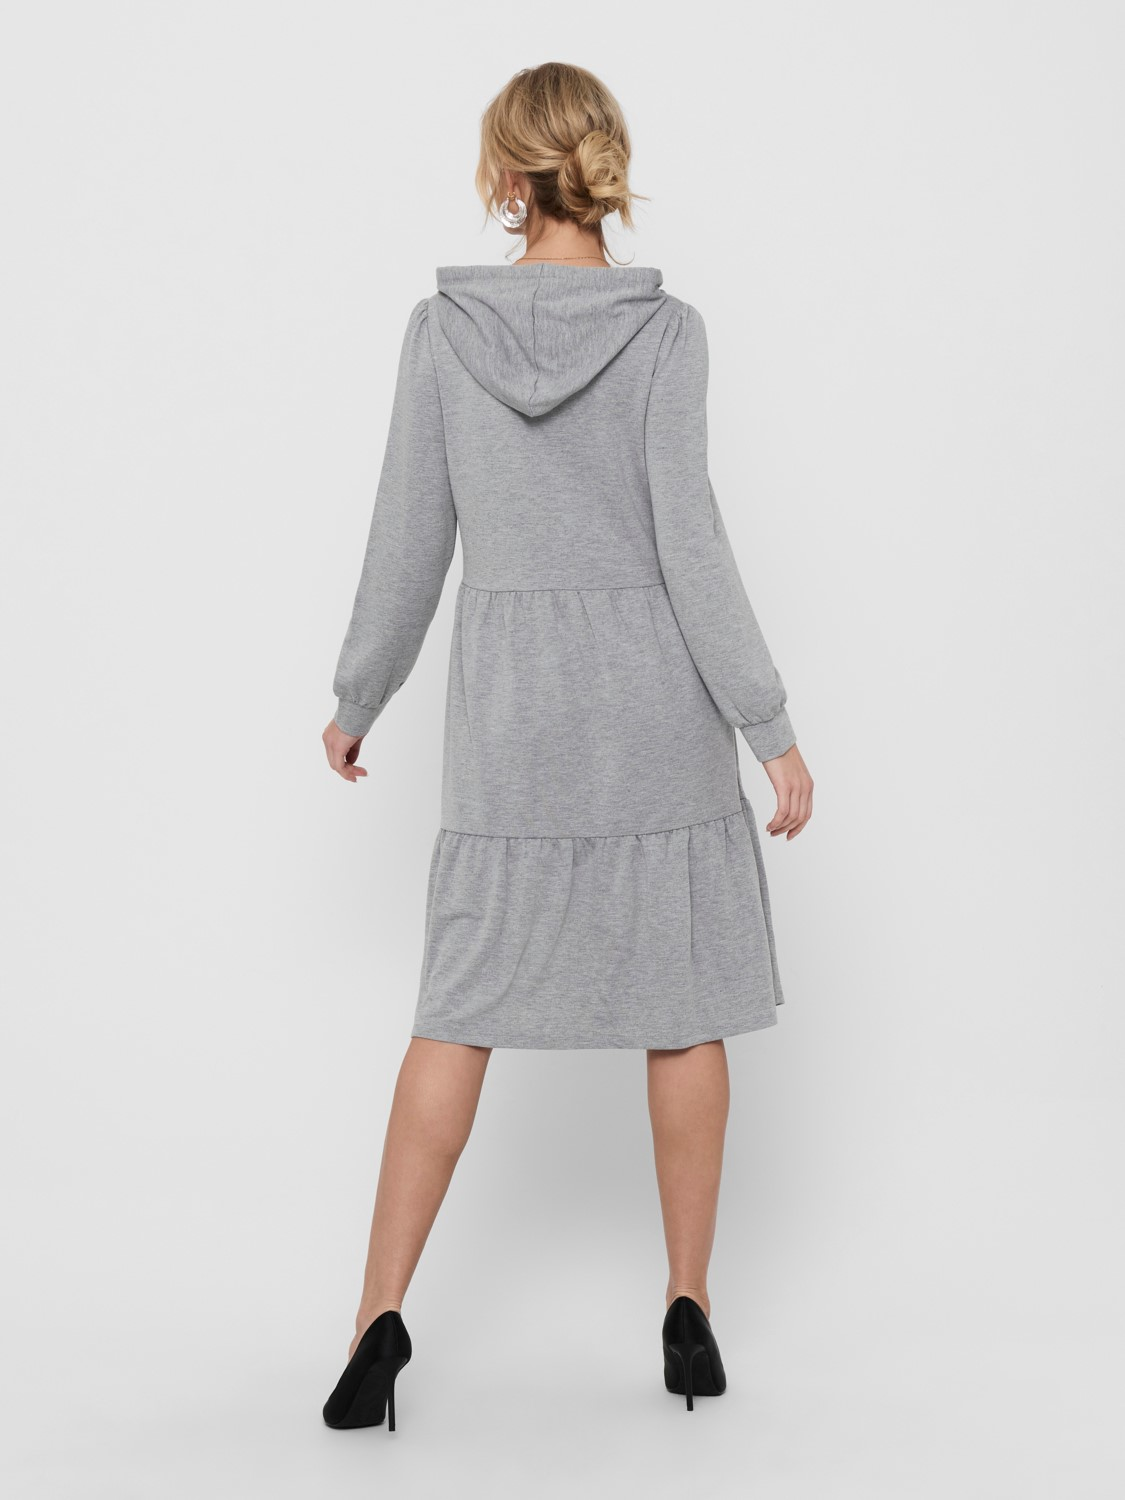 gallery-2081-for-15226752-light grey